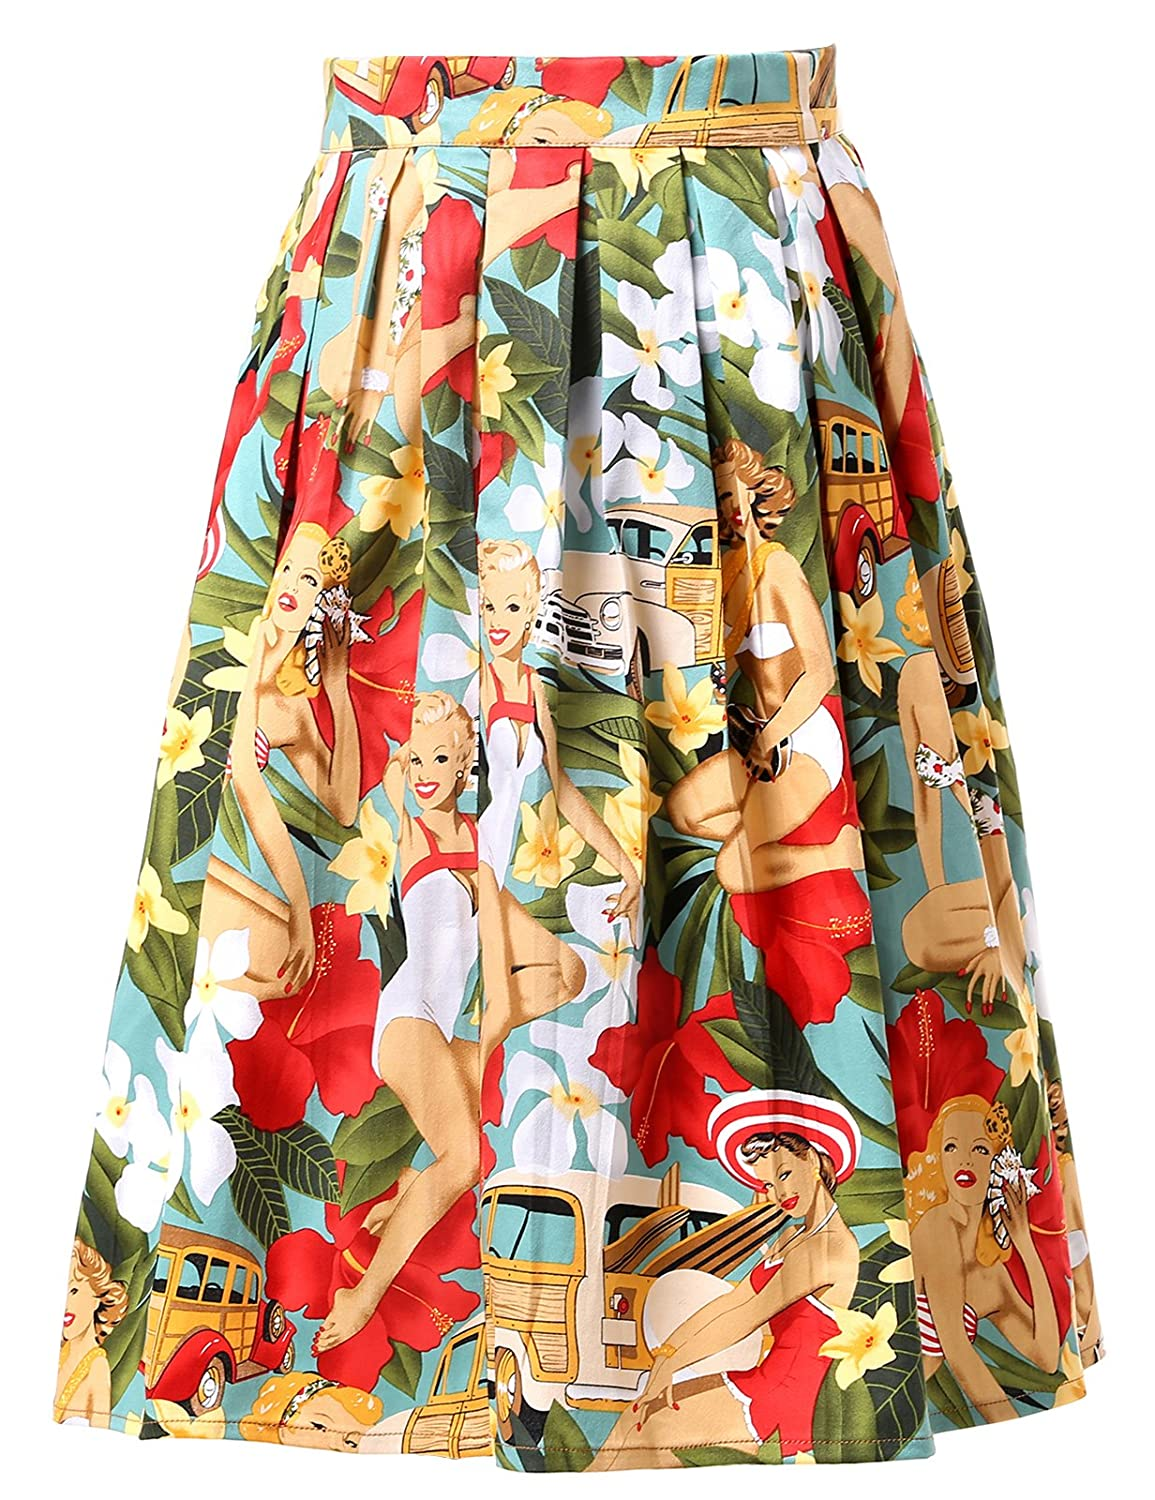 a6c725009e2f GRACE KARIN 50S Vintage Floral A-Line Pleated Skirt Swing Full Circle Skirt   Amazon.co.uk  Clothing